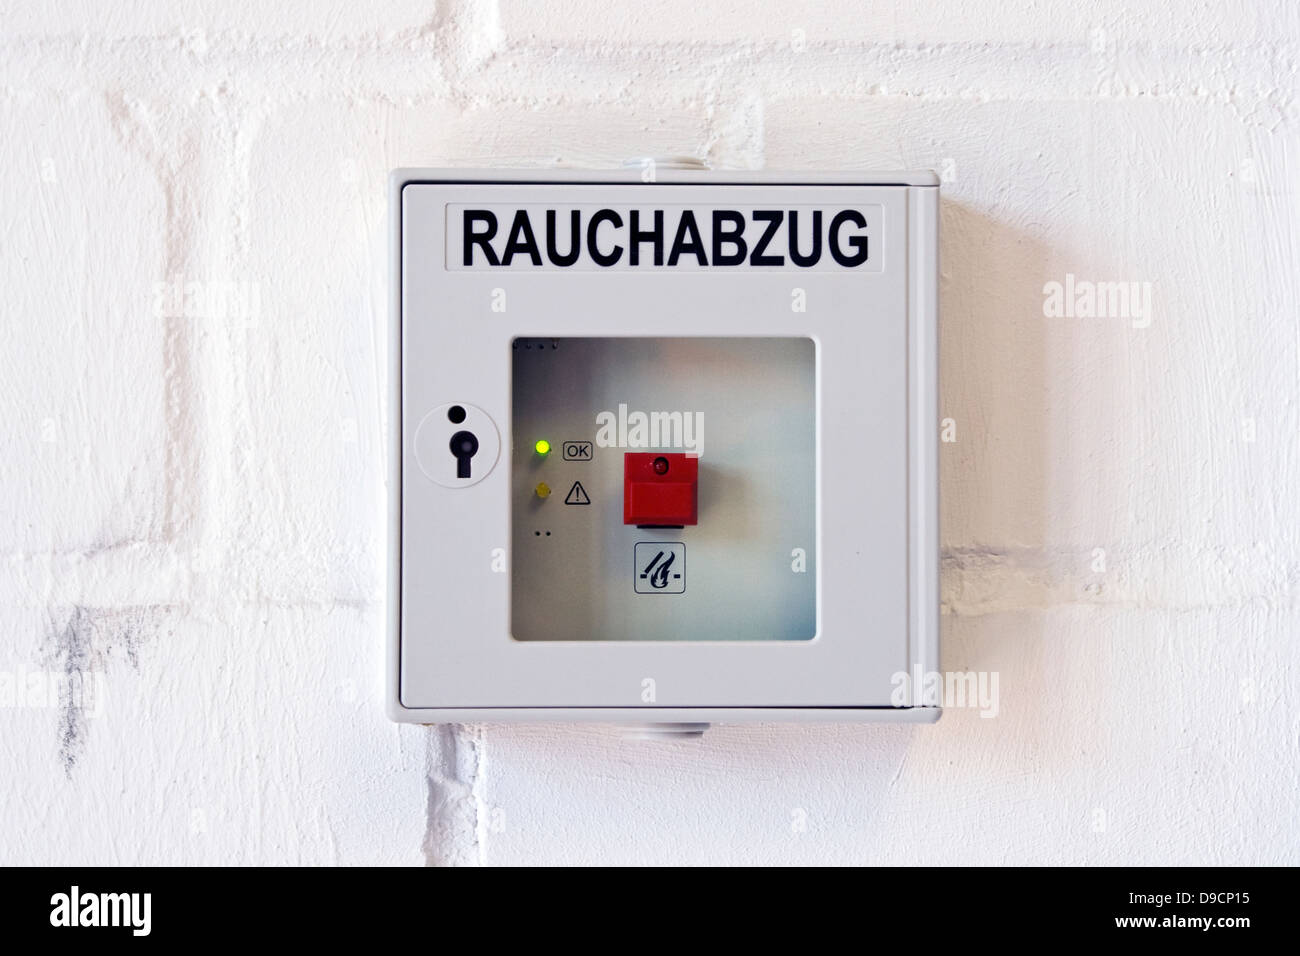 Emergency counter for the smoke deduction in a building, Emergency switch for the chimney in a building, - Stock Image